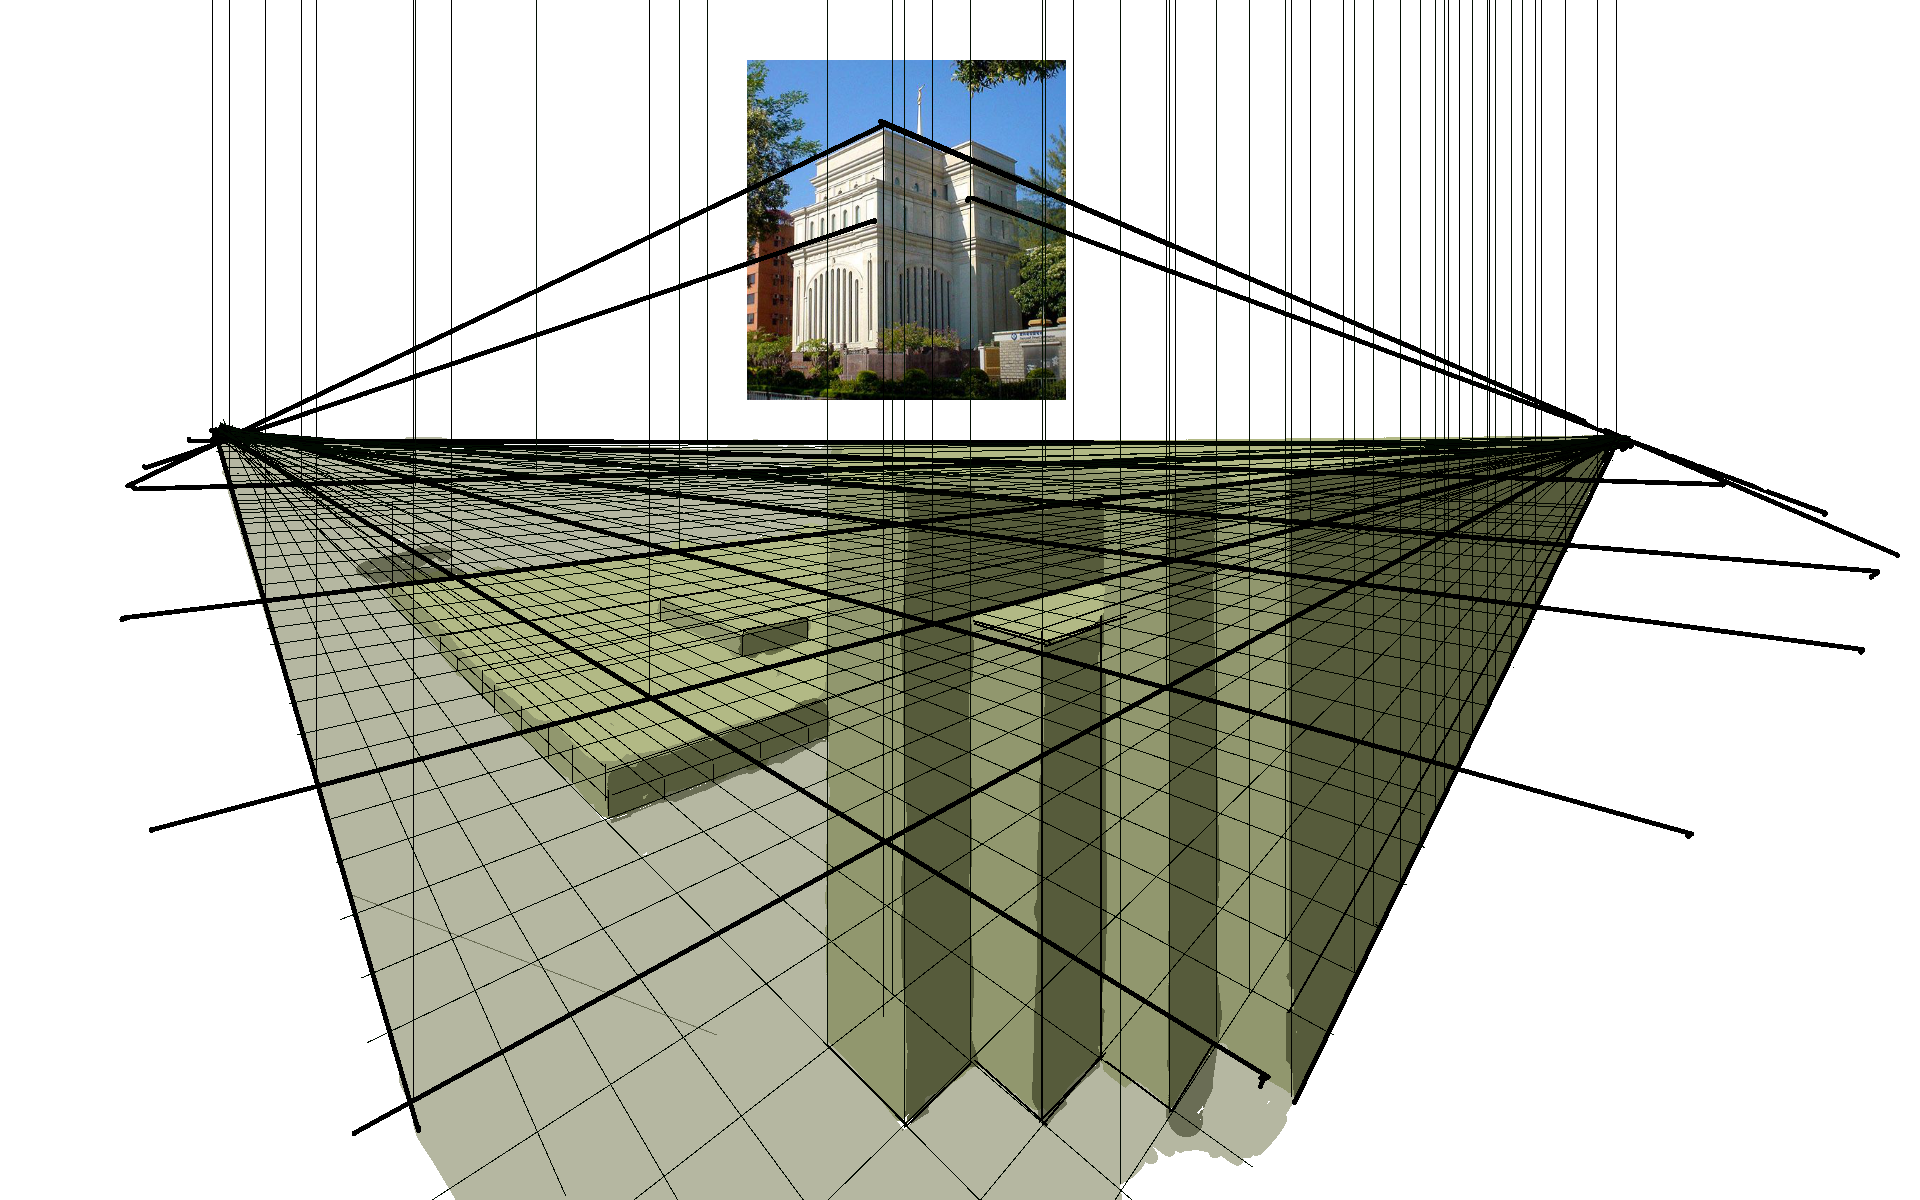 [Image: grids.png]